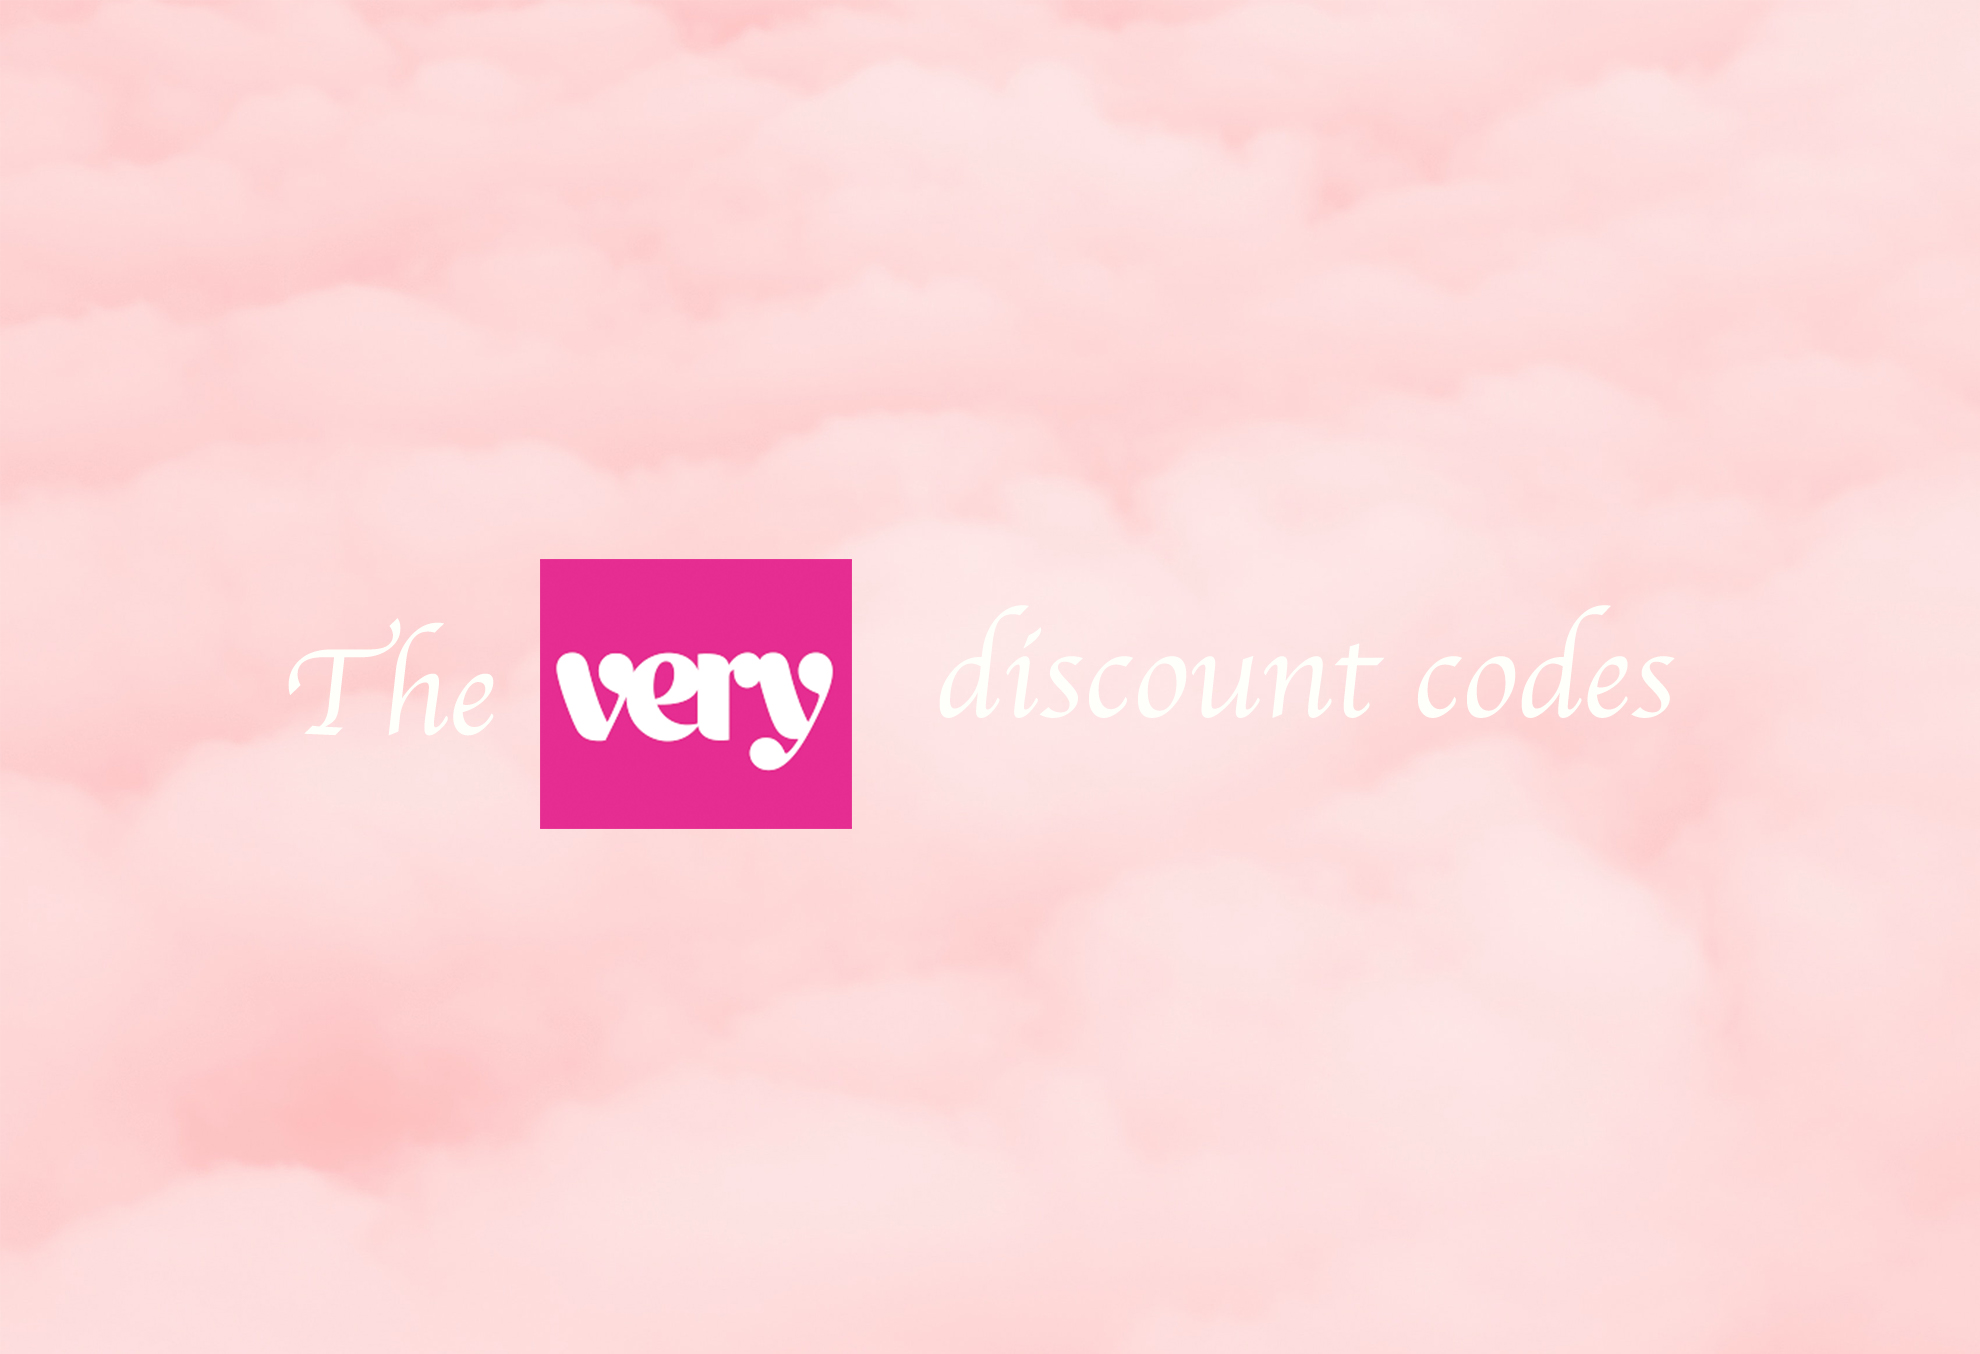 How to get Very discount codes for existing customers in 2021